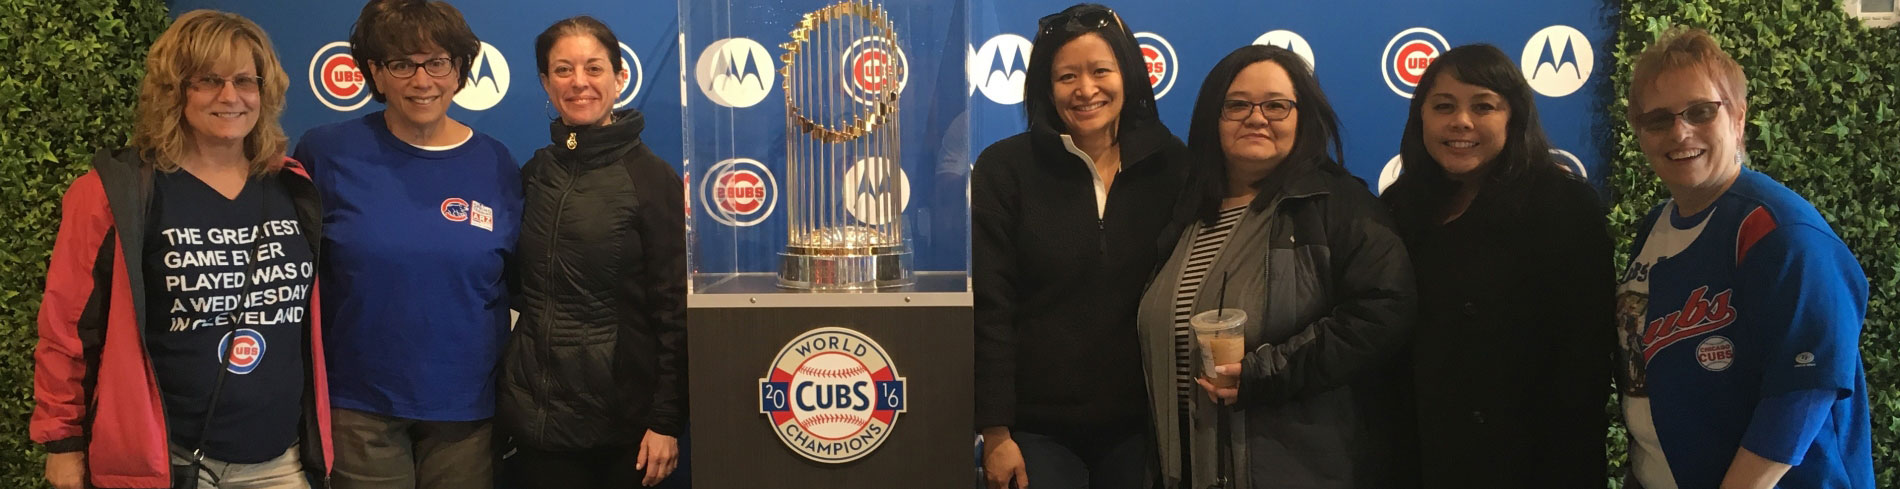 It's important to have the proper ear plugs when attending loud events. This group of women are attending an event for the Chicago Cubs.